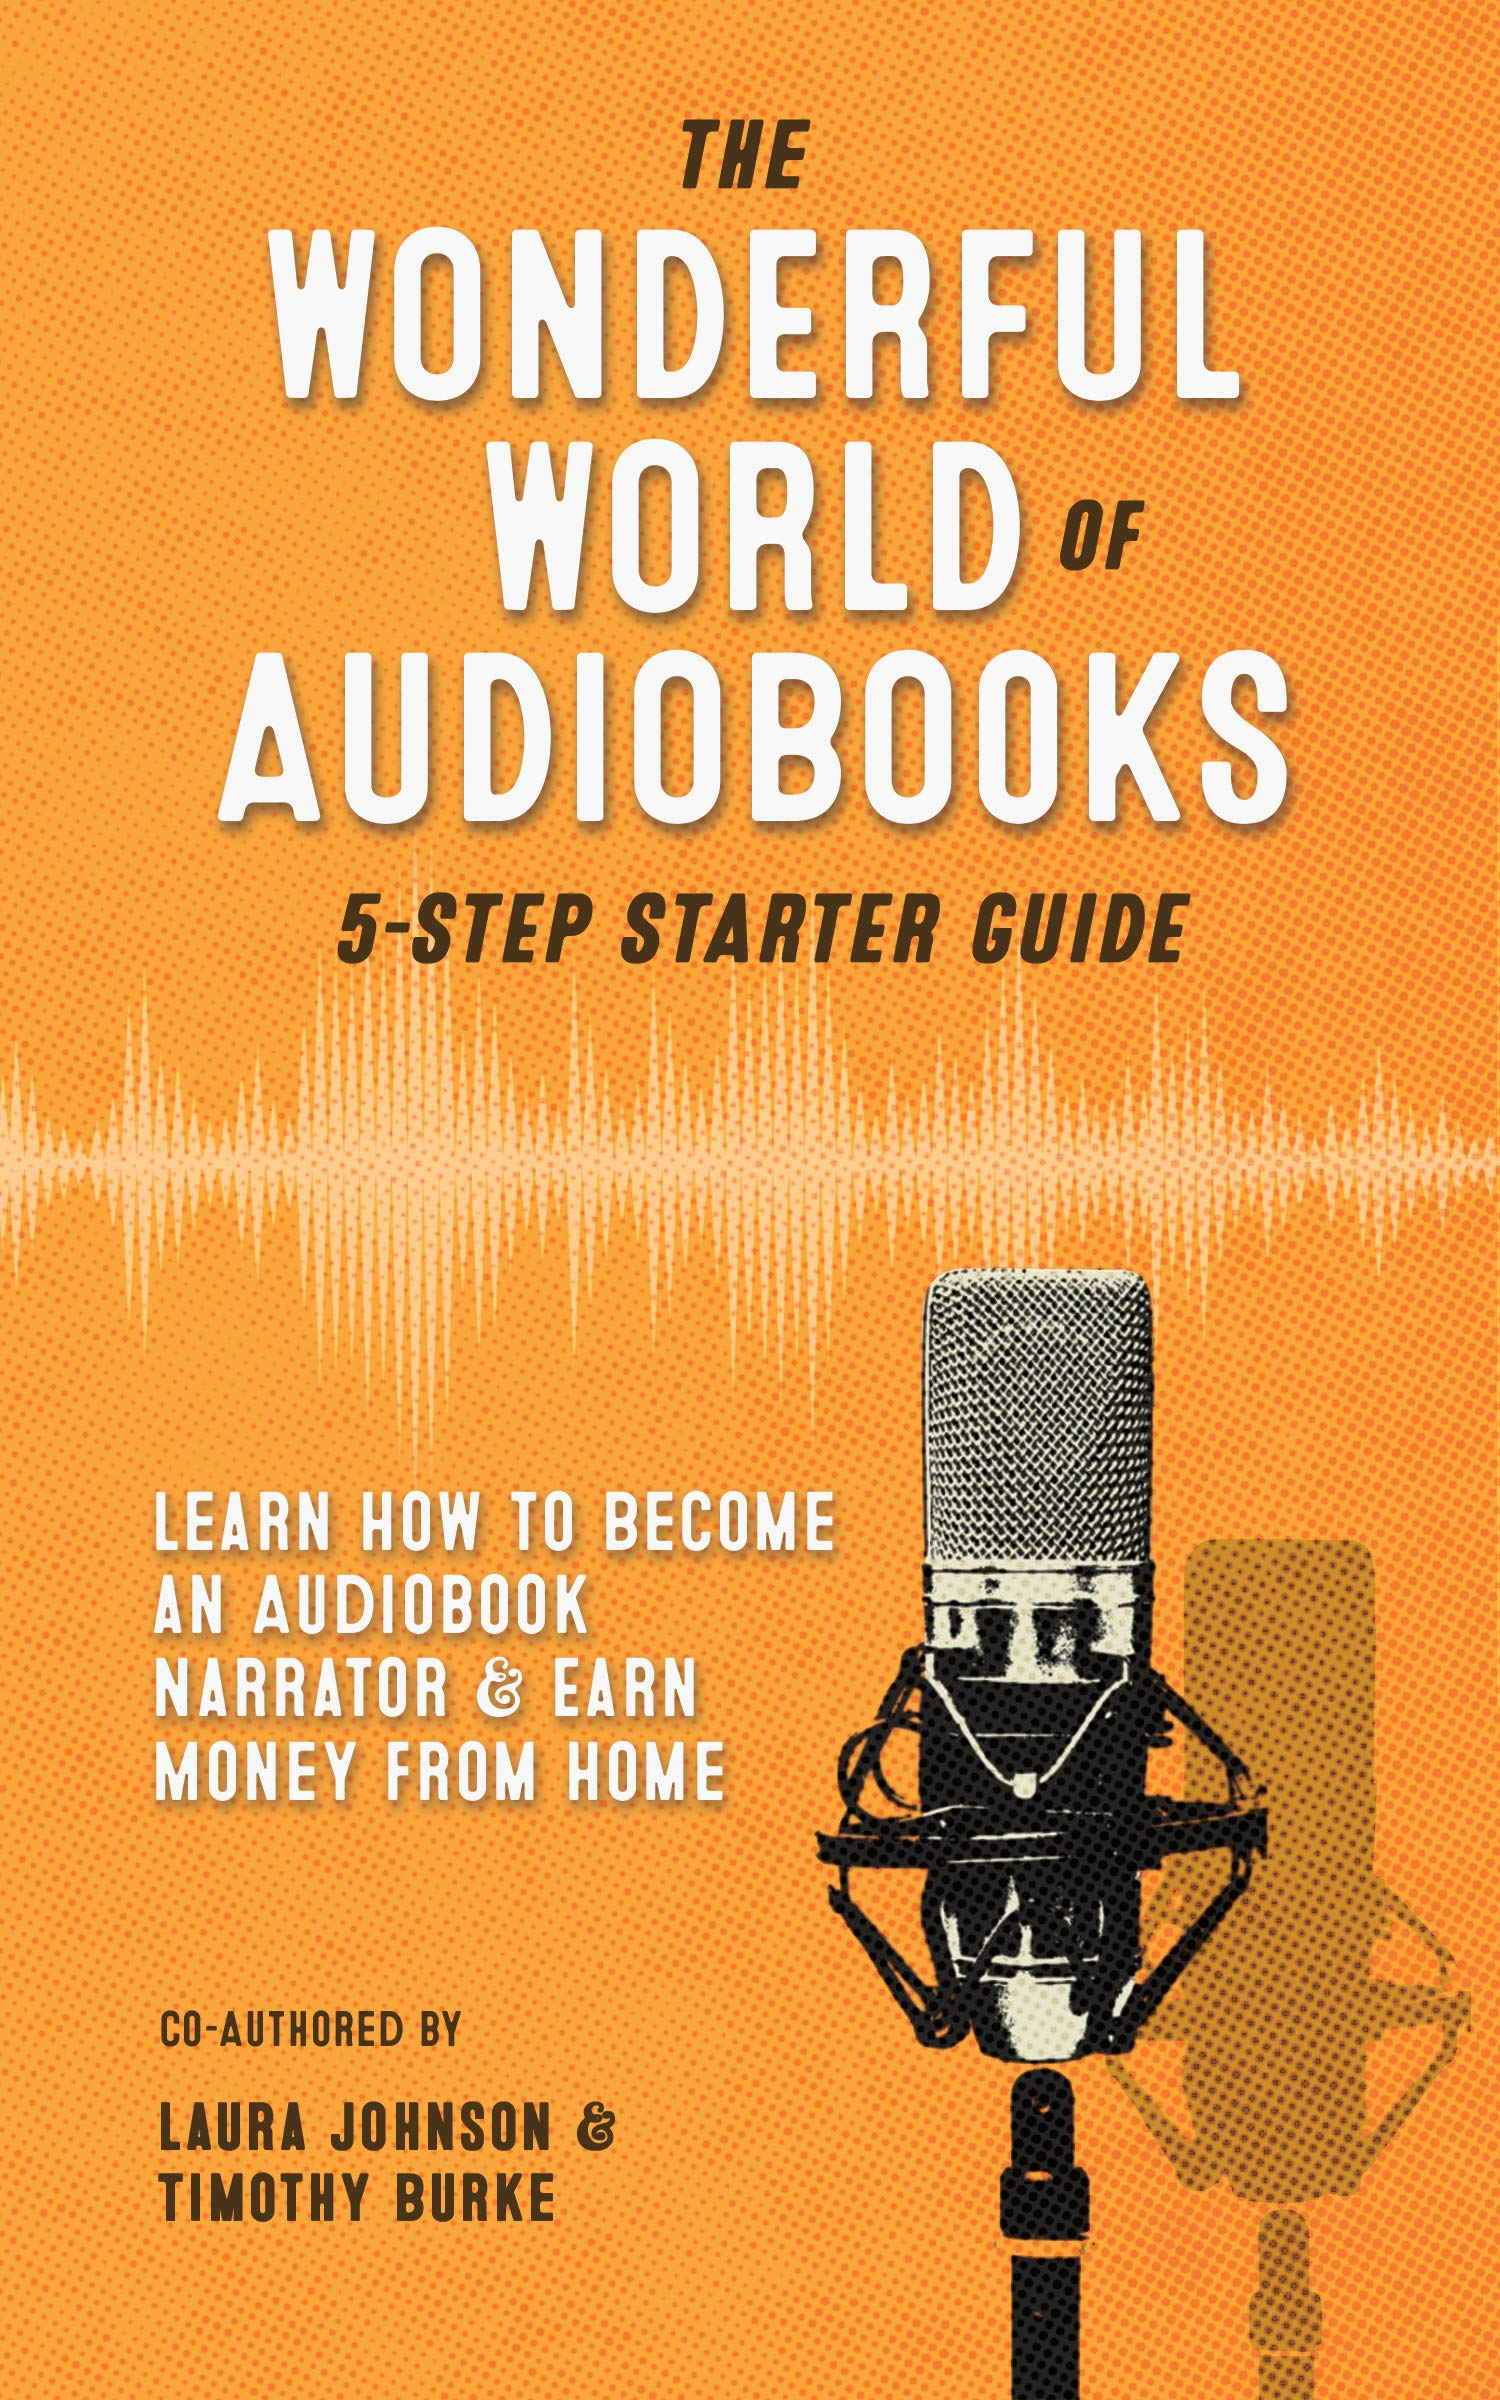 The Wonderful World of Audiobooks 5-Step Starter Guide: How to Become an Audiobook Narrator & Earn Money from Home